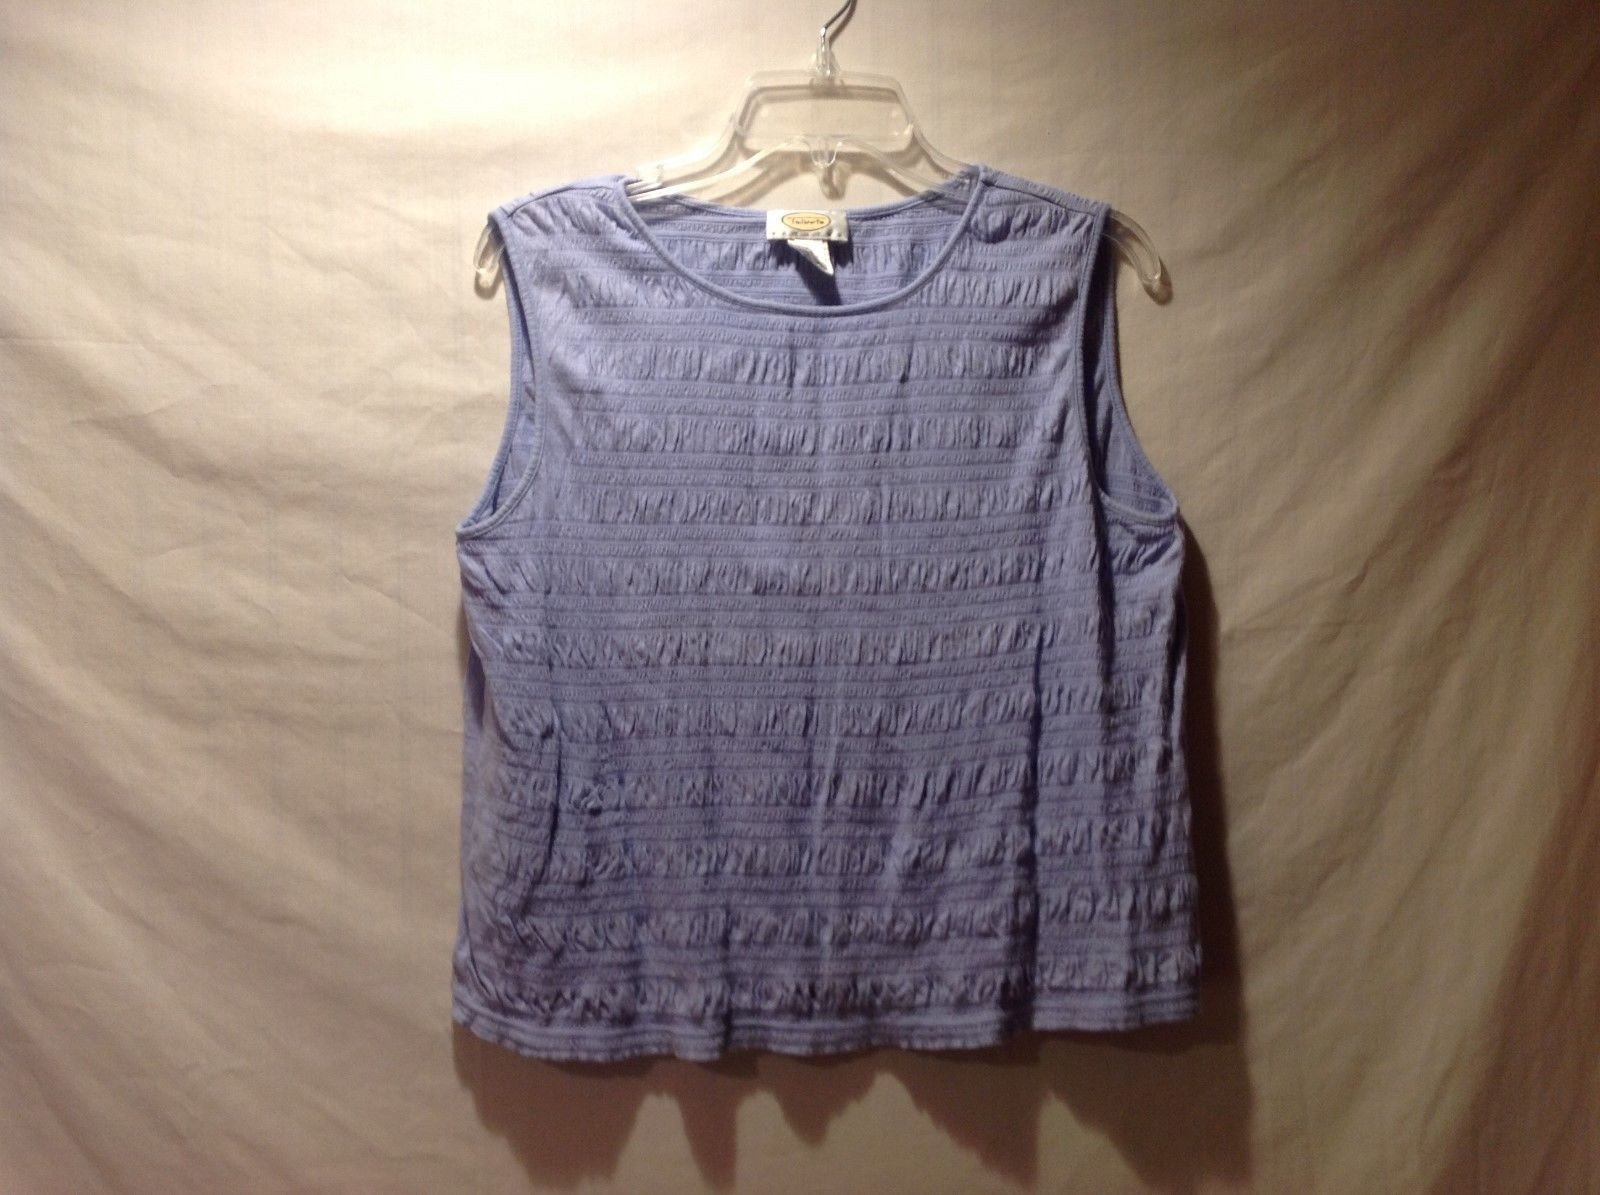 Talbots Lavender Purple Sleeveless Blouse/Tank Size Petite Large